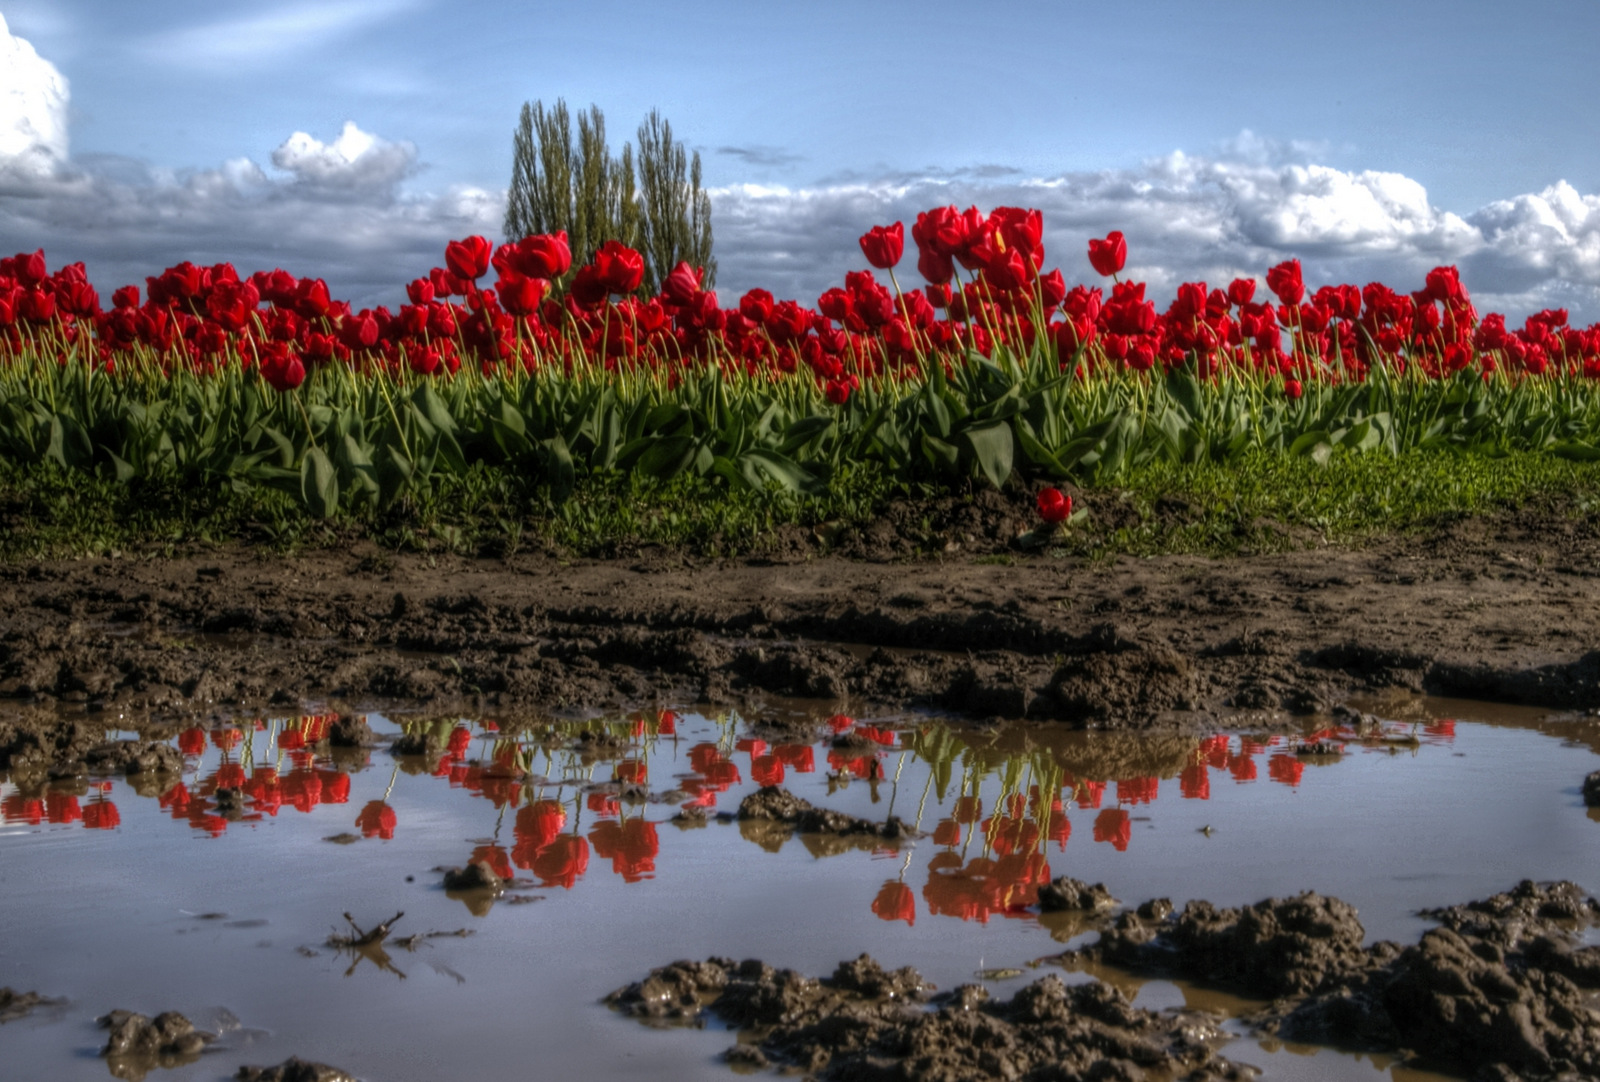 115A0459_60_61_64_65_tonemapped